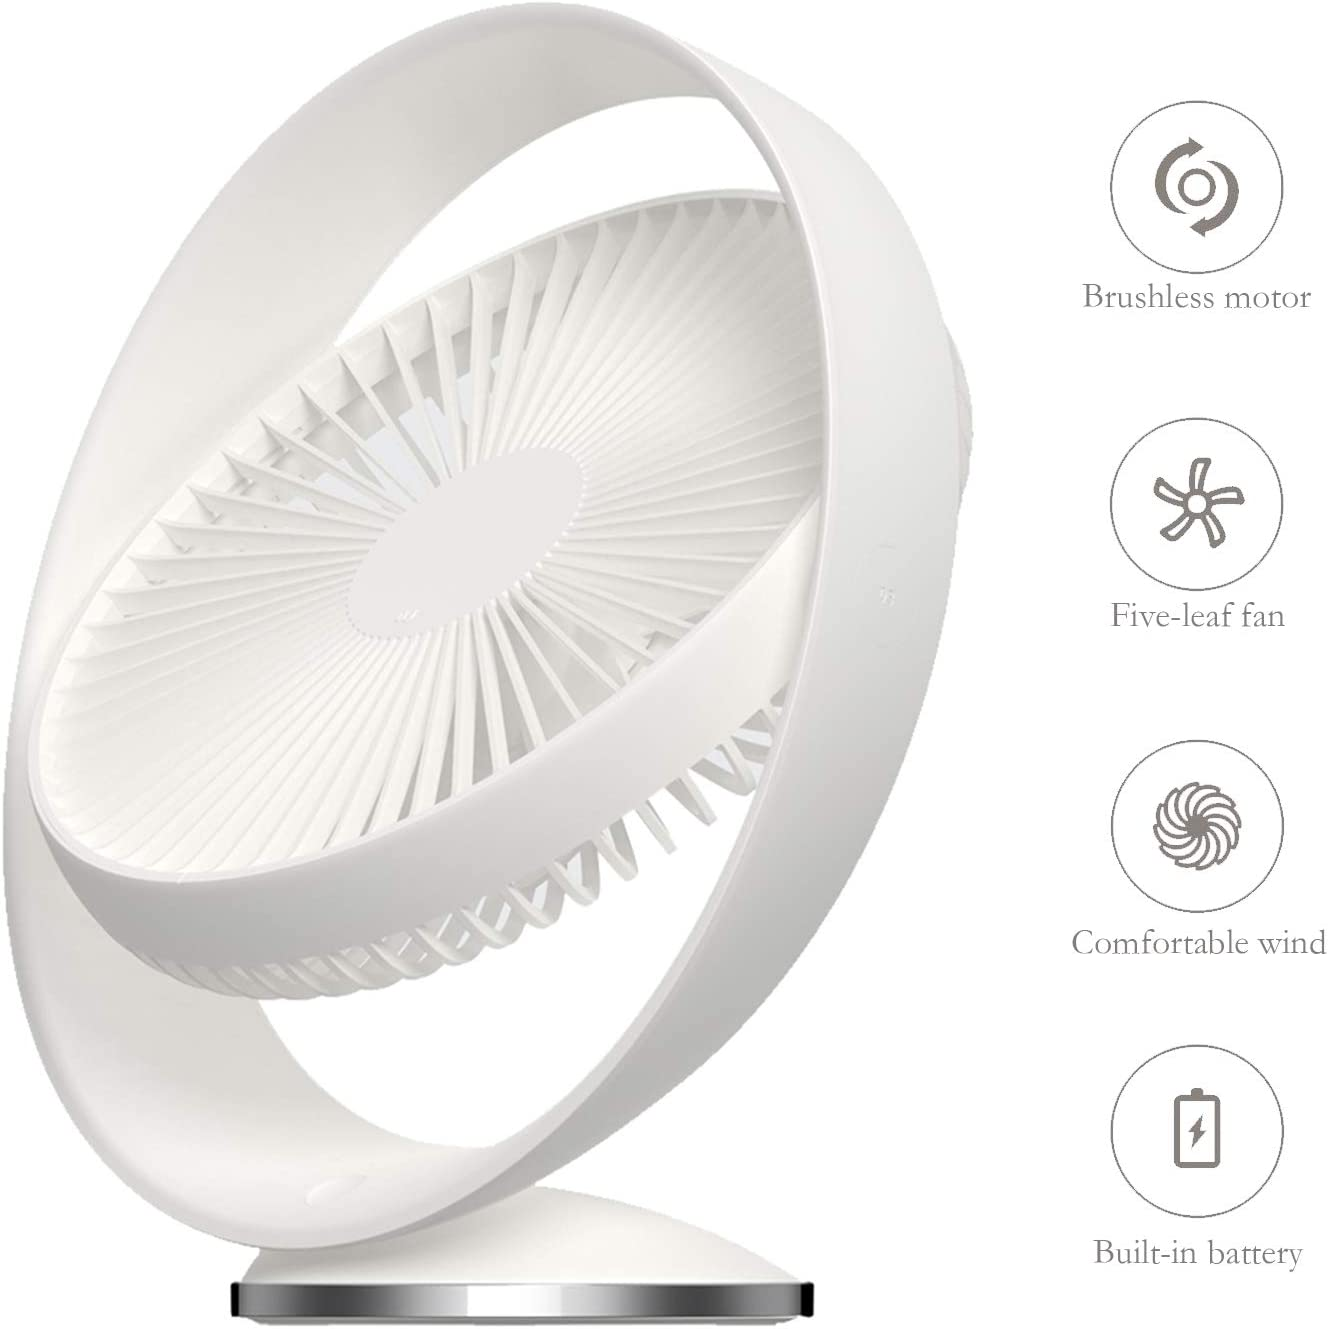 FANGZONG 2019 USB 8-inch Desk Fan, 3 Speeds Whisper Quiet, 160 Rotationd Up and Down Portable Fan Desktop Office Table Air Circulator Fan